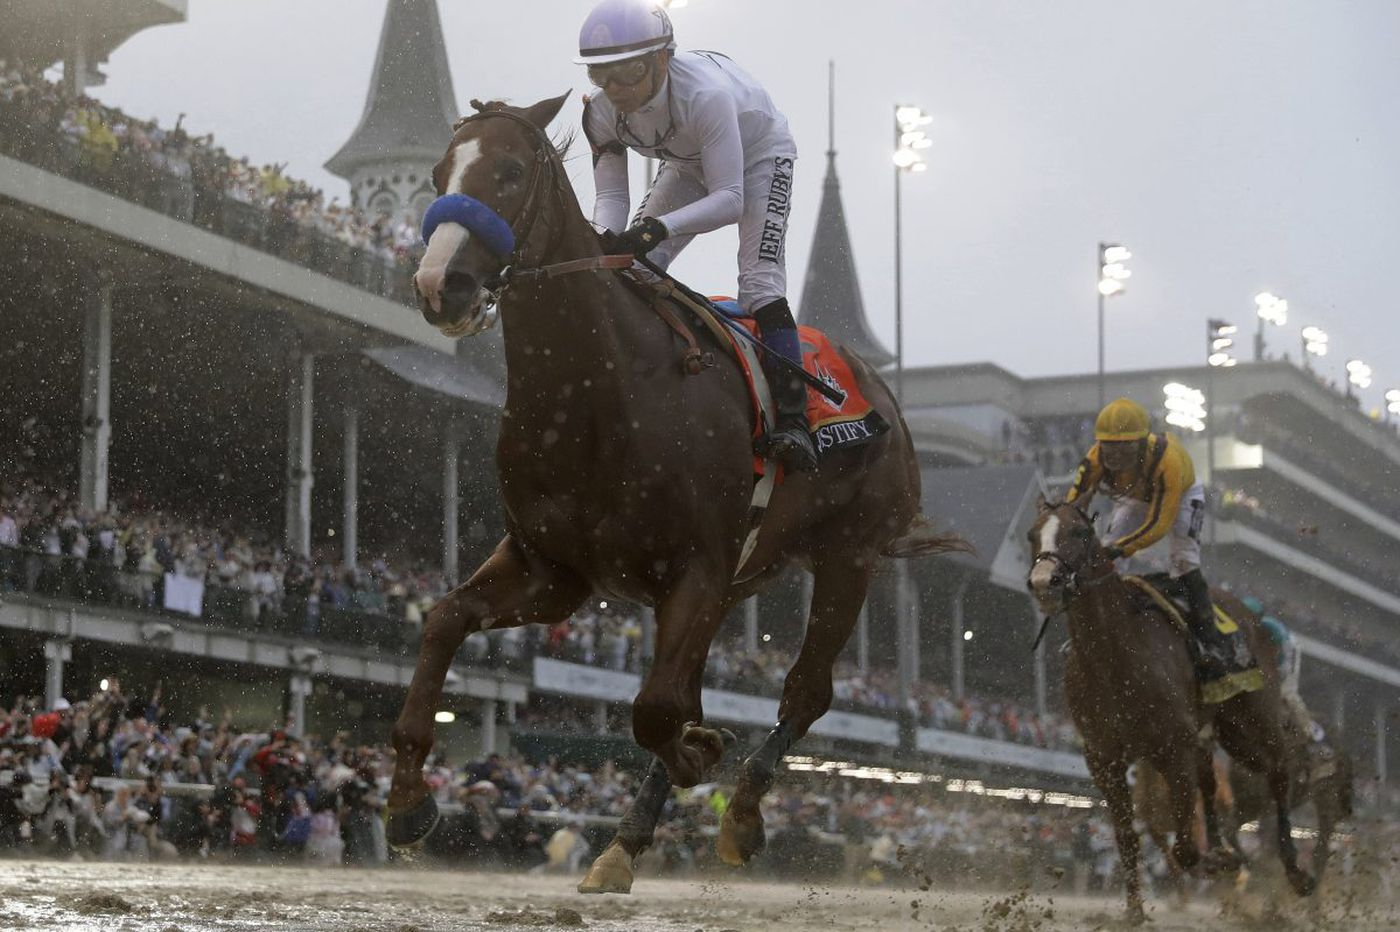 Clout: The Kentucky Derby - an event to forget?